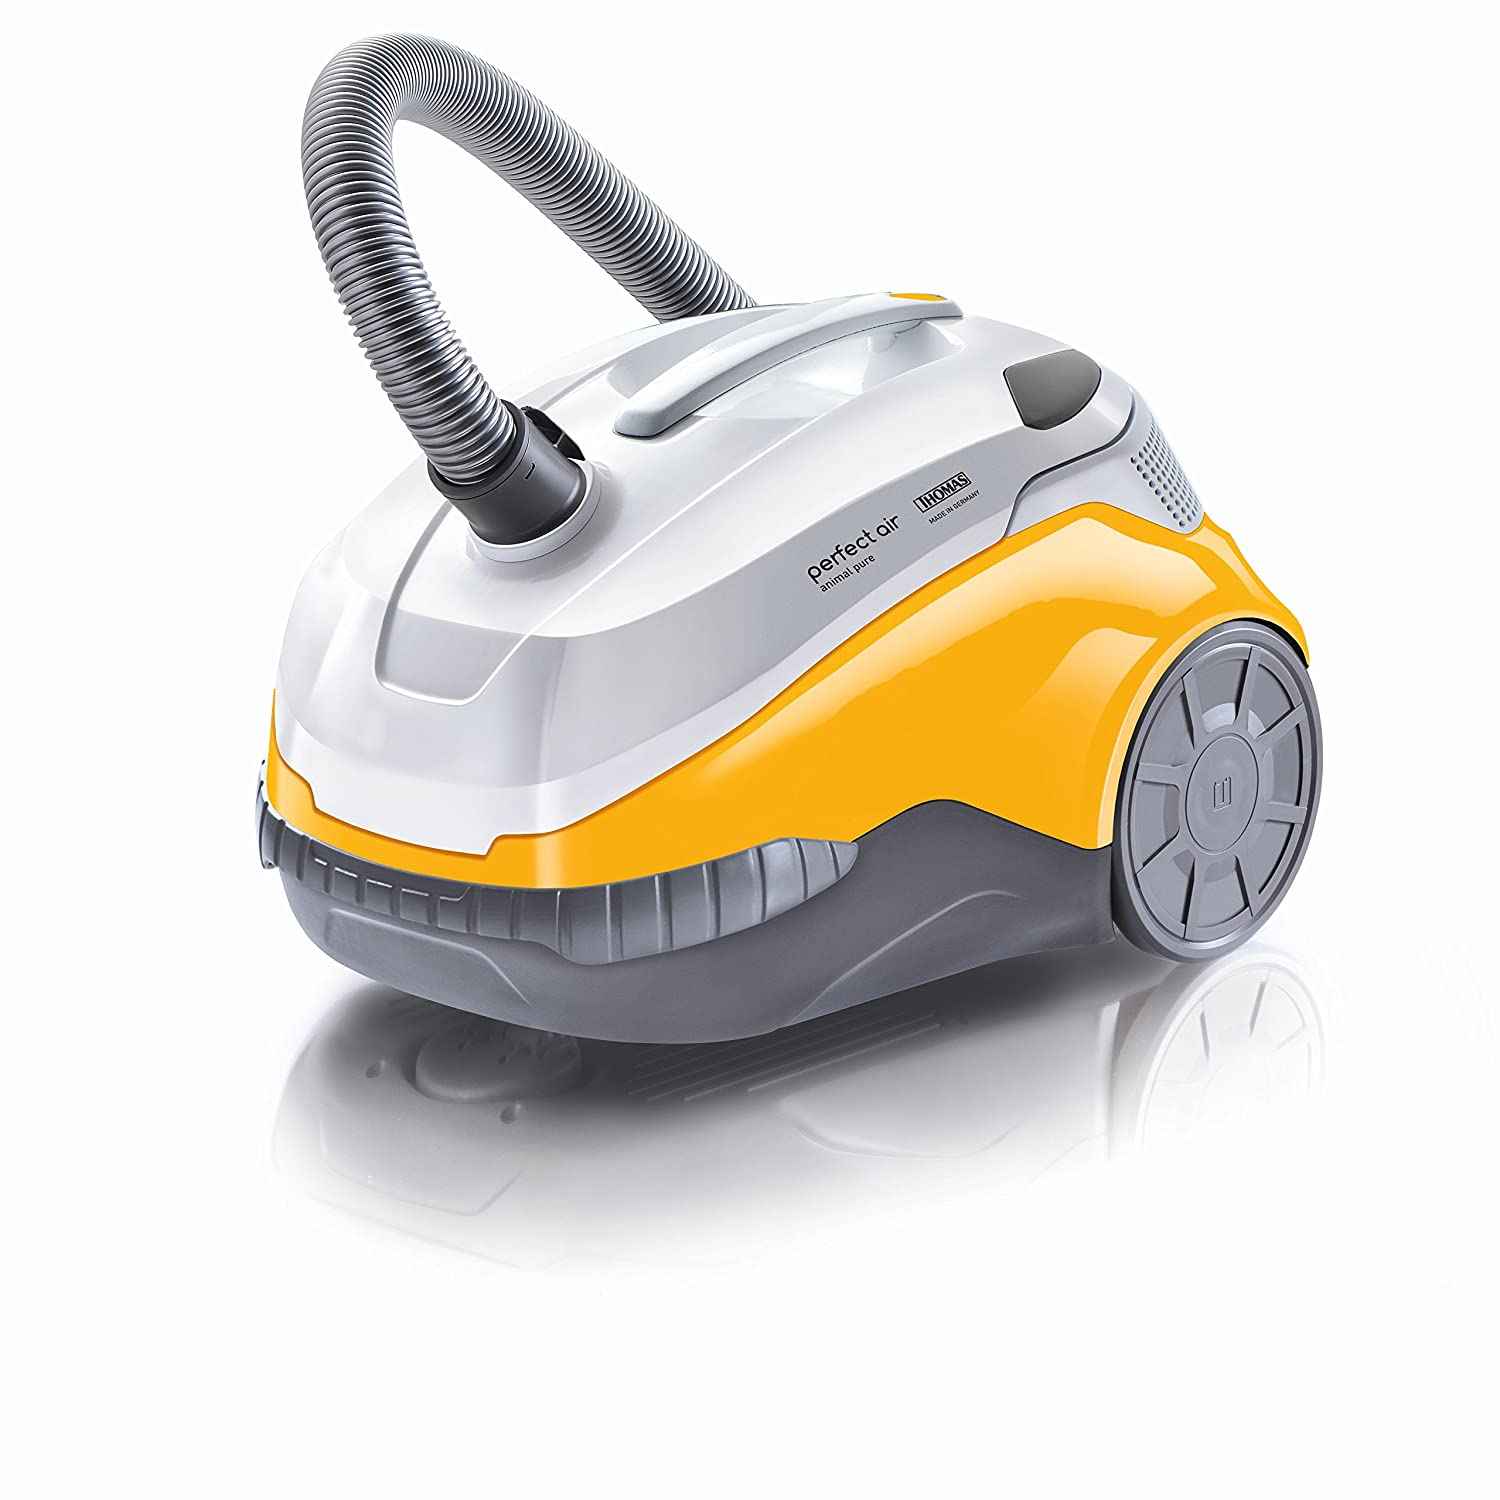 Vacuum cleaner with aquafilter Thomas - fast and high-quality cleaning